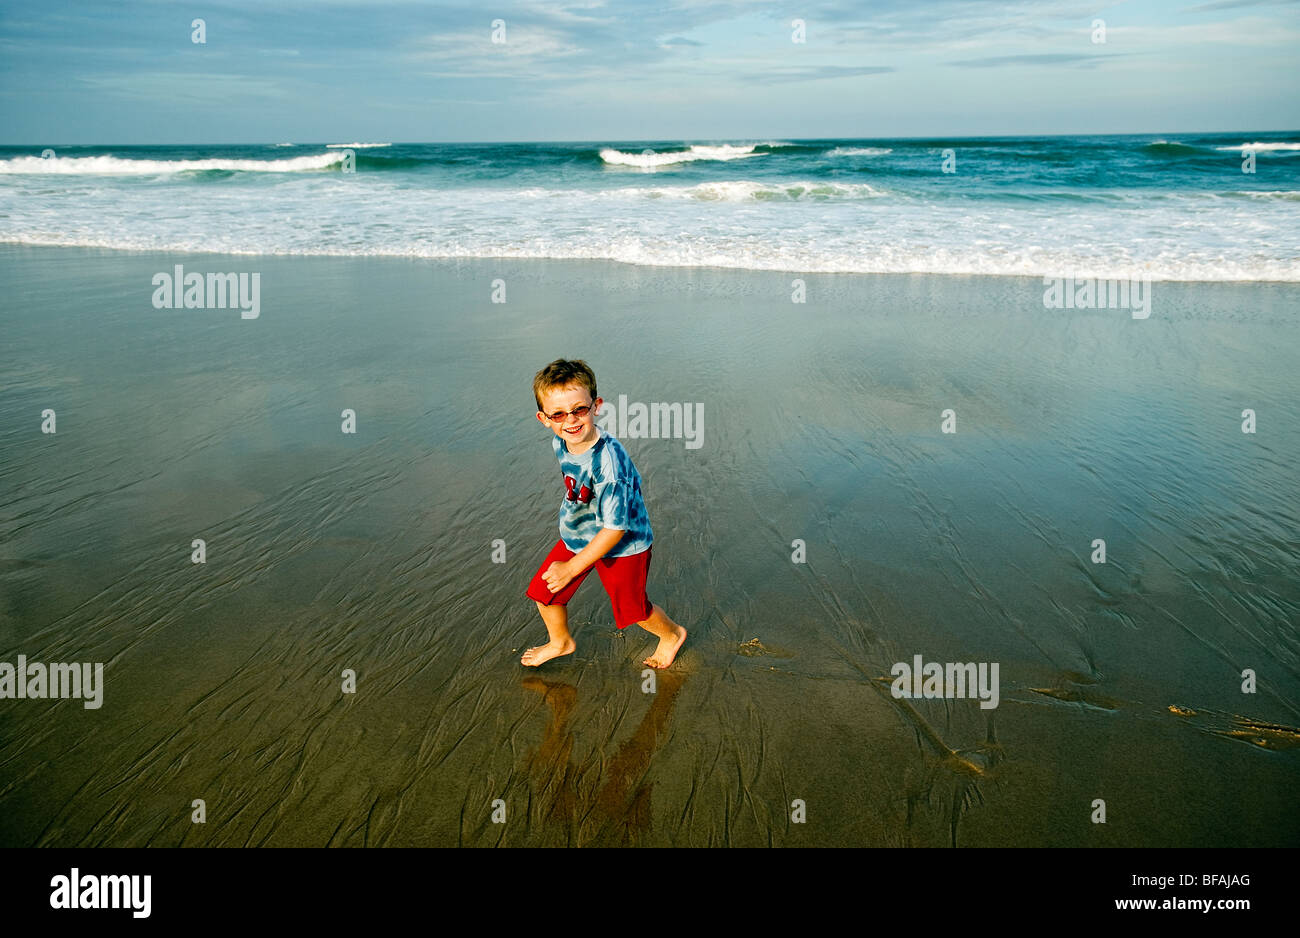 Boy playing at the beach. - Stock Image